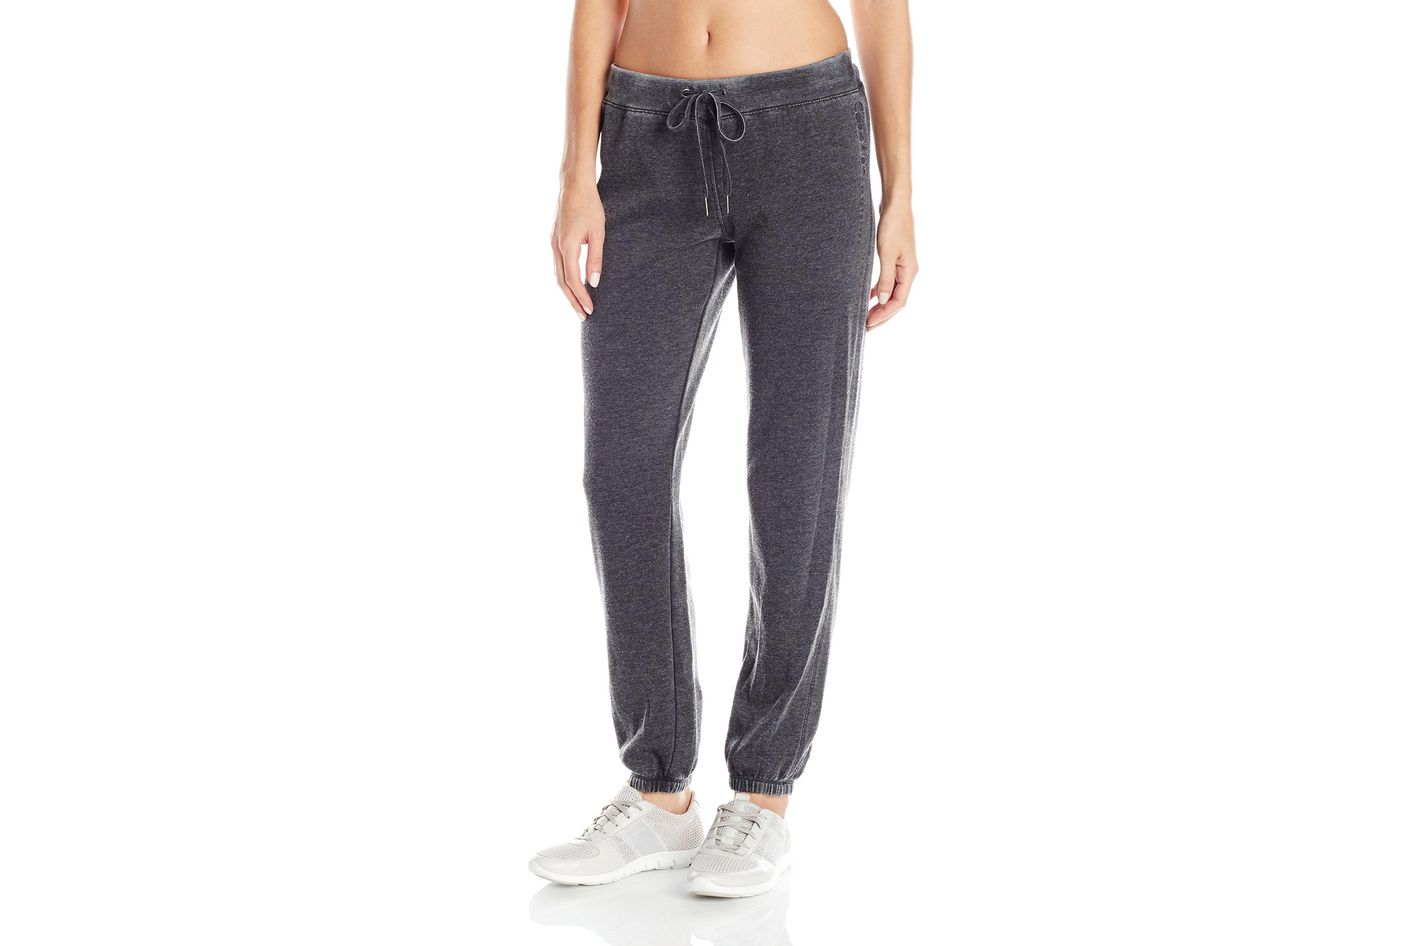 Calvin Klein Performance Women's Distressed Sweatpants